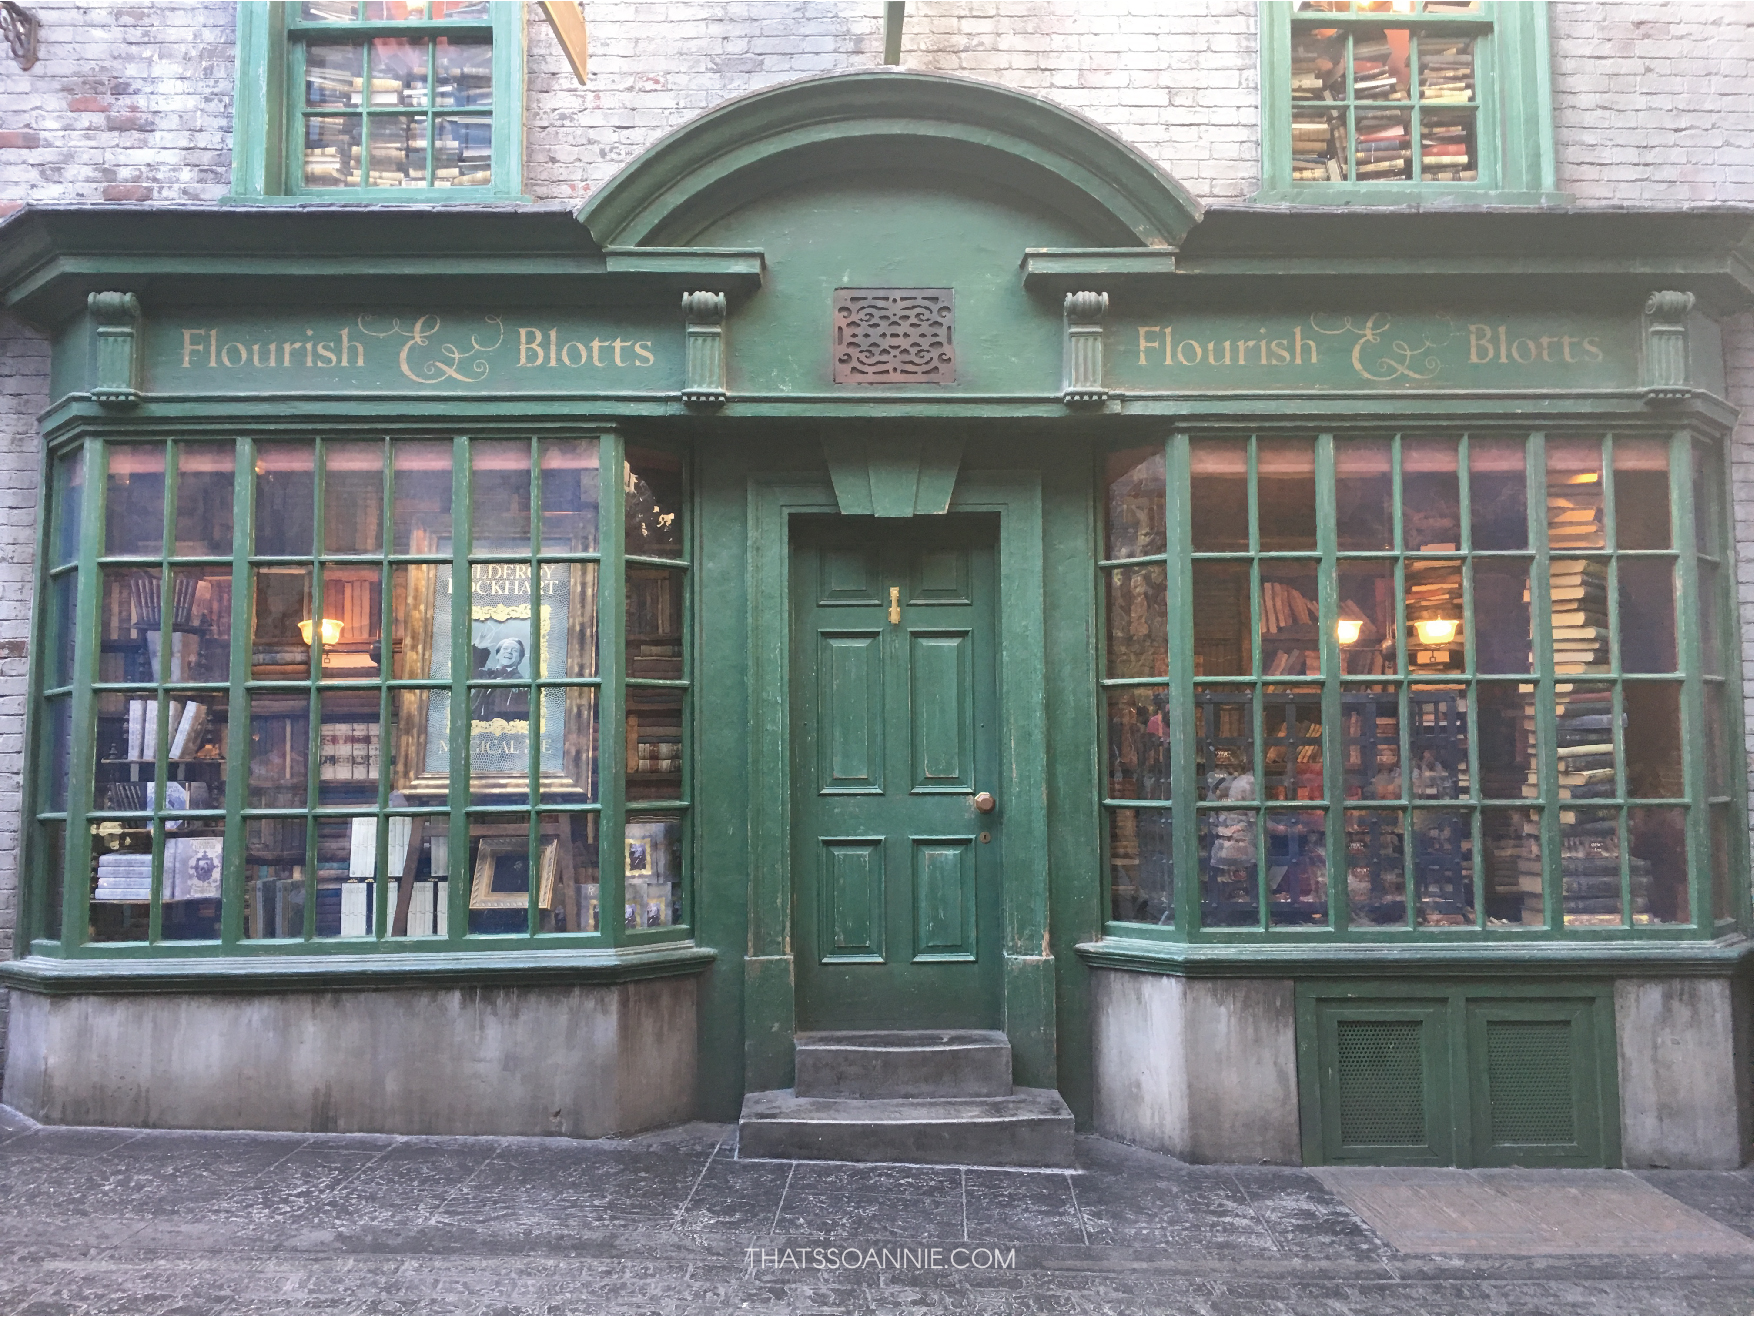 Flourish & Blotts, Diagon Alley, The Wizarding World of Harry Potter